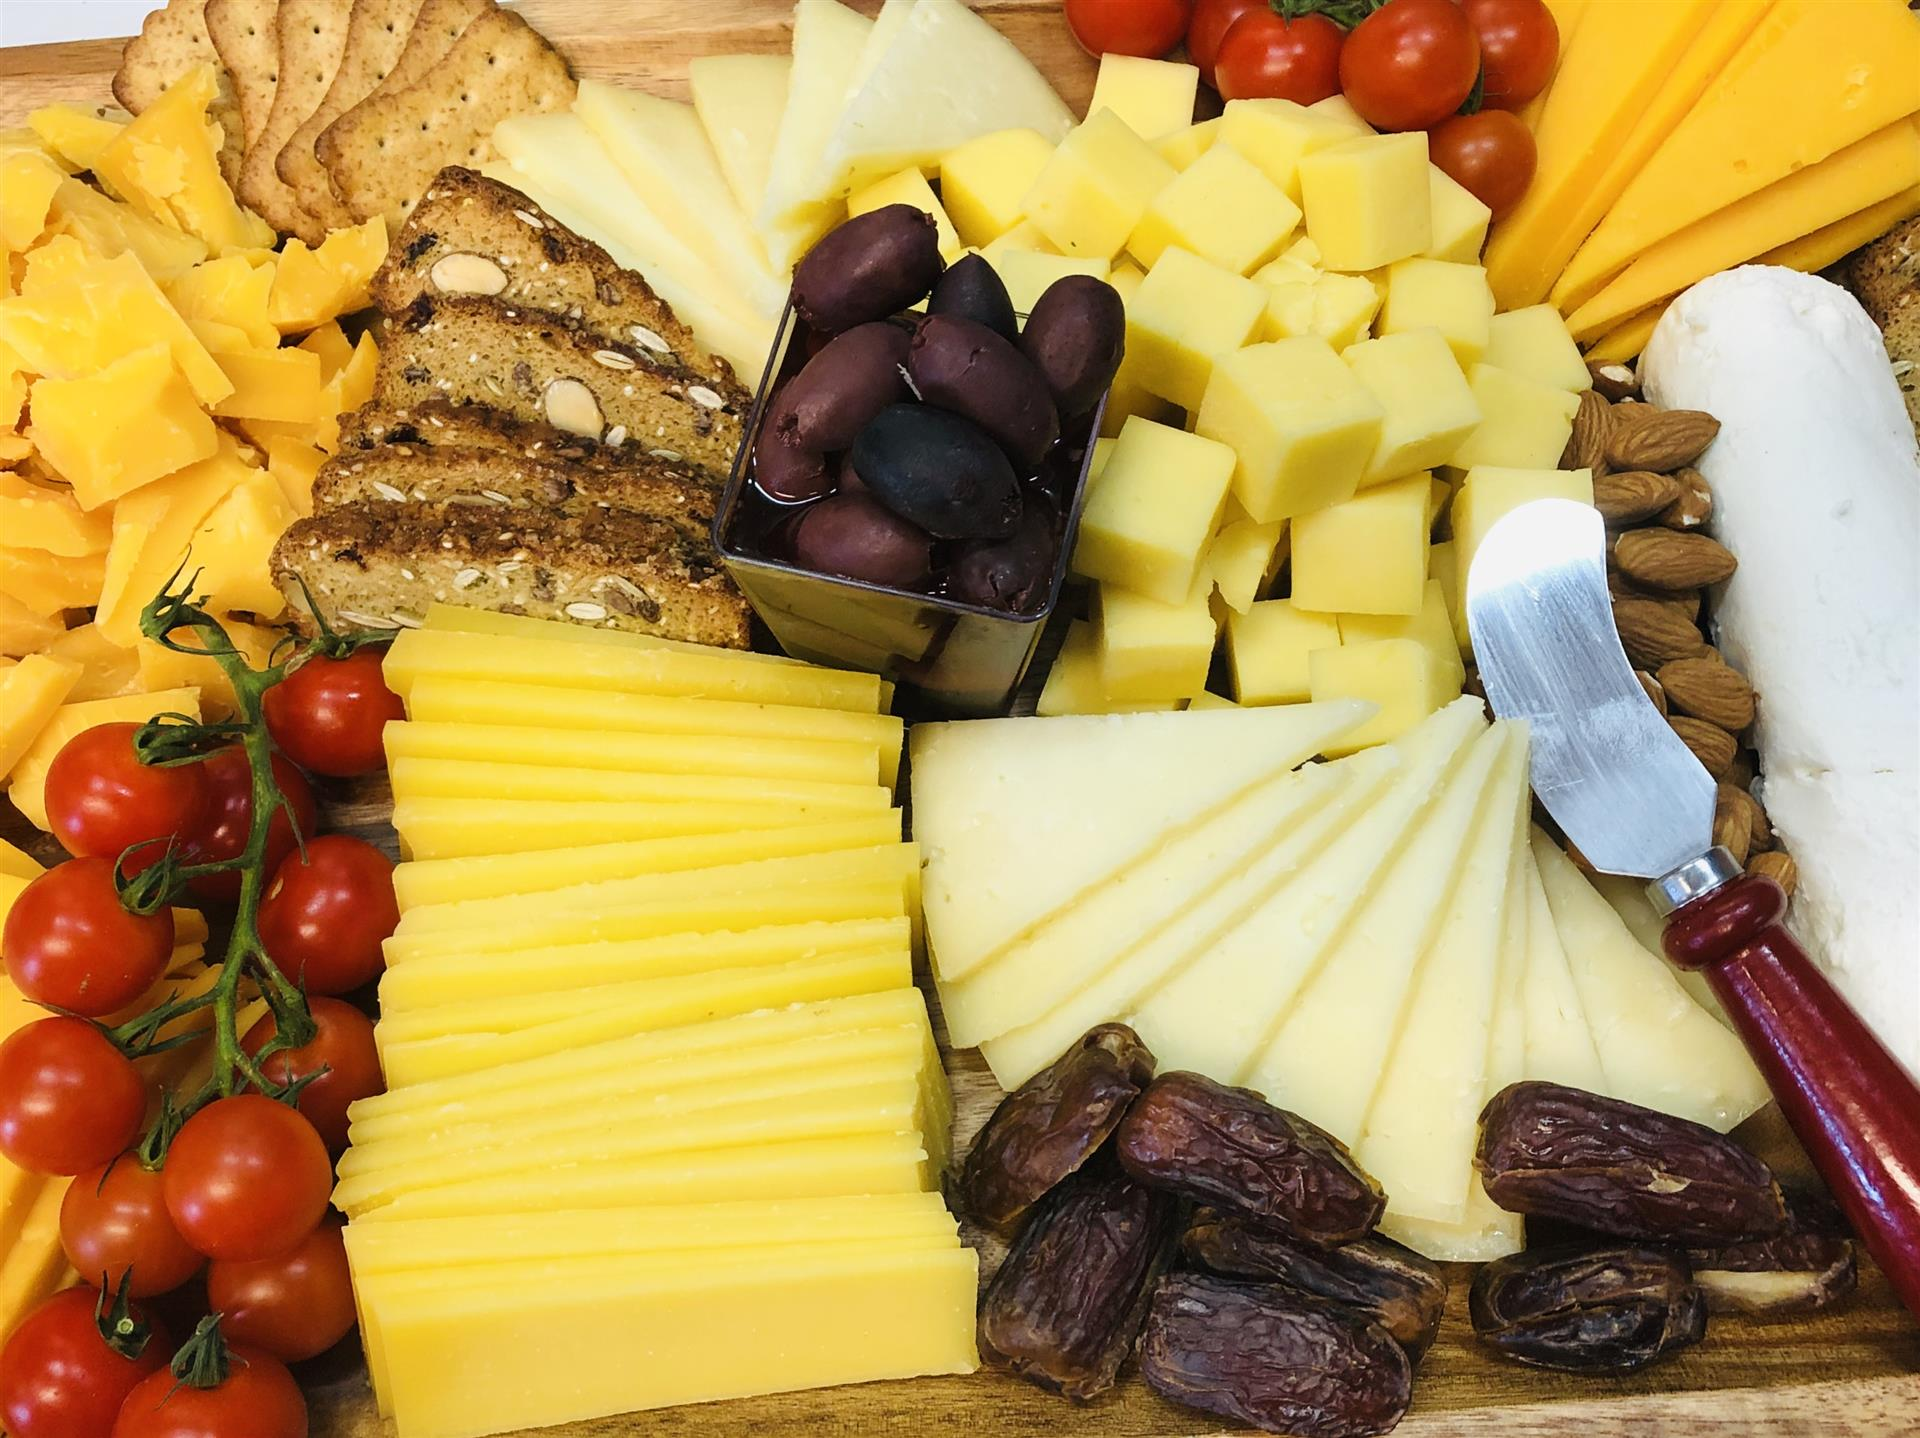 imported cheese platter with assorted cheeses, dates, cherry tomatoes and rustic bread